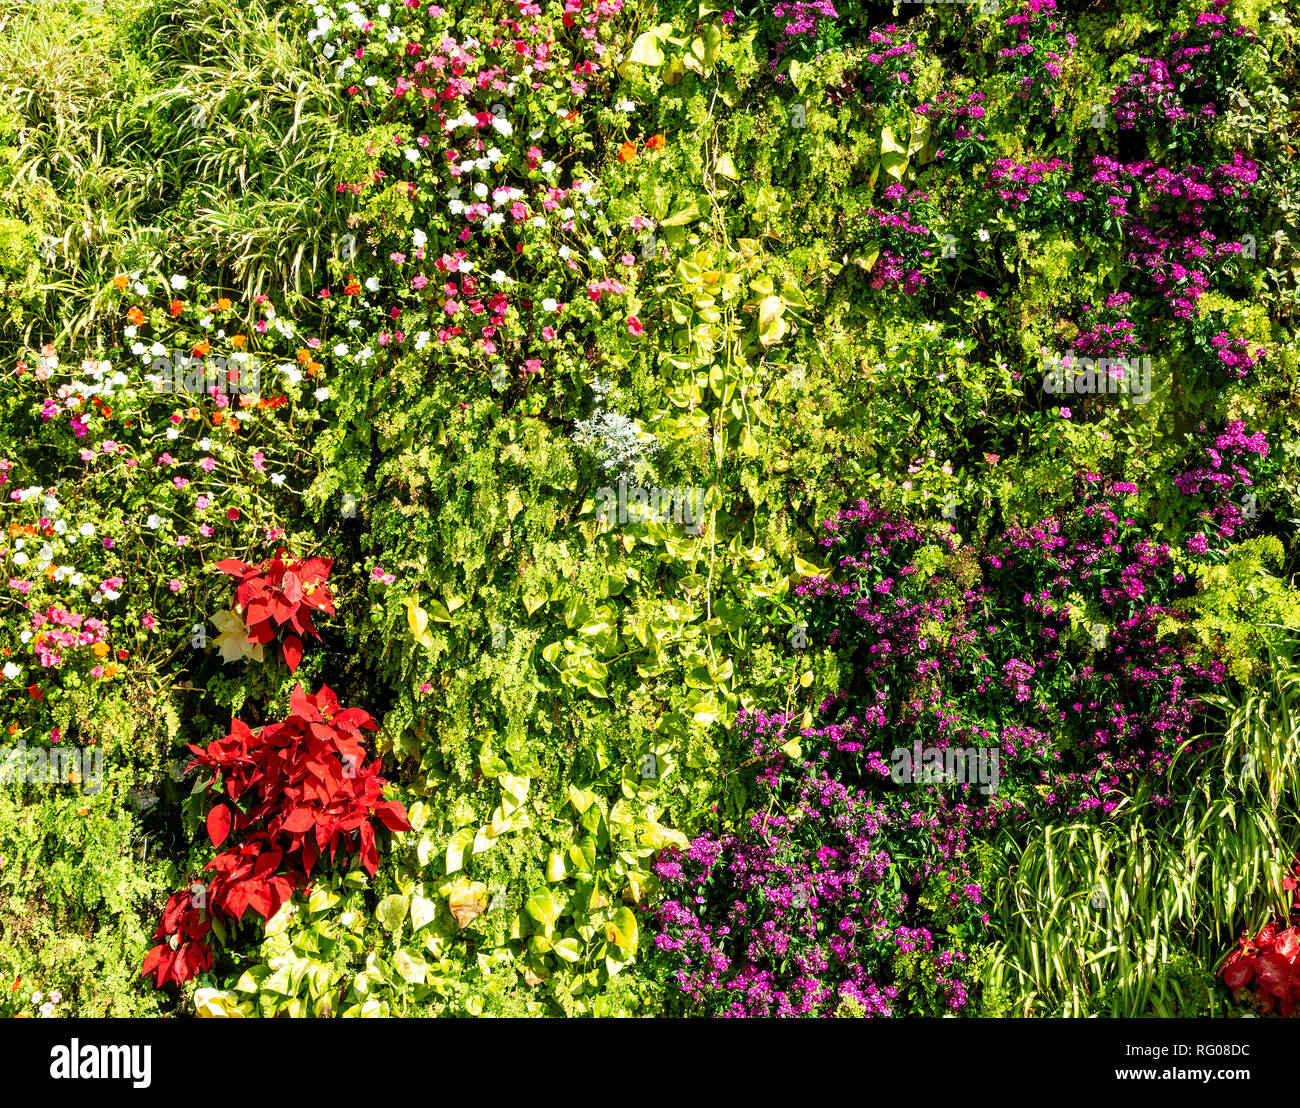 Green Leaf And Flowers Wall Texture Background Stock Photo Alamy